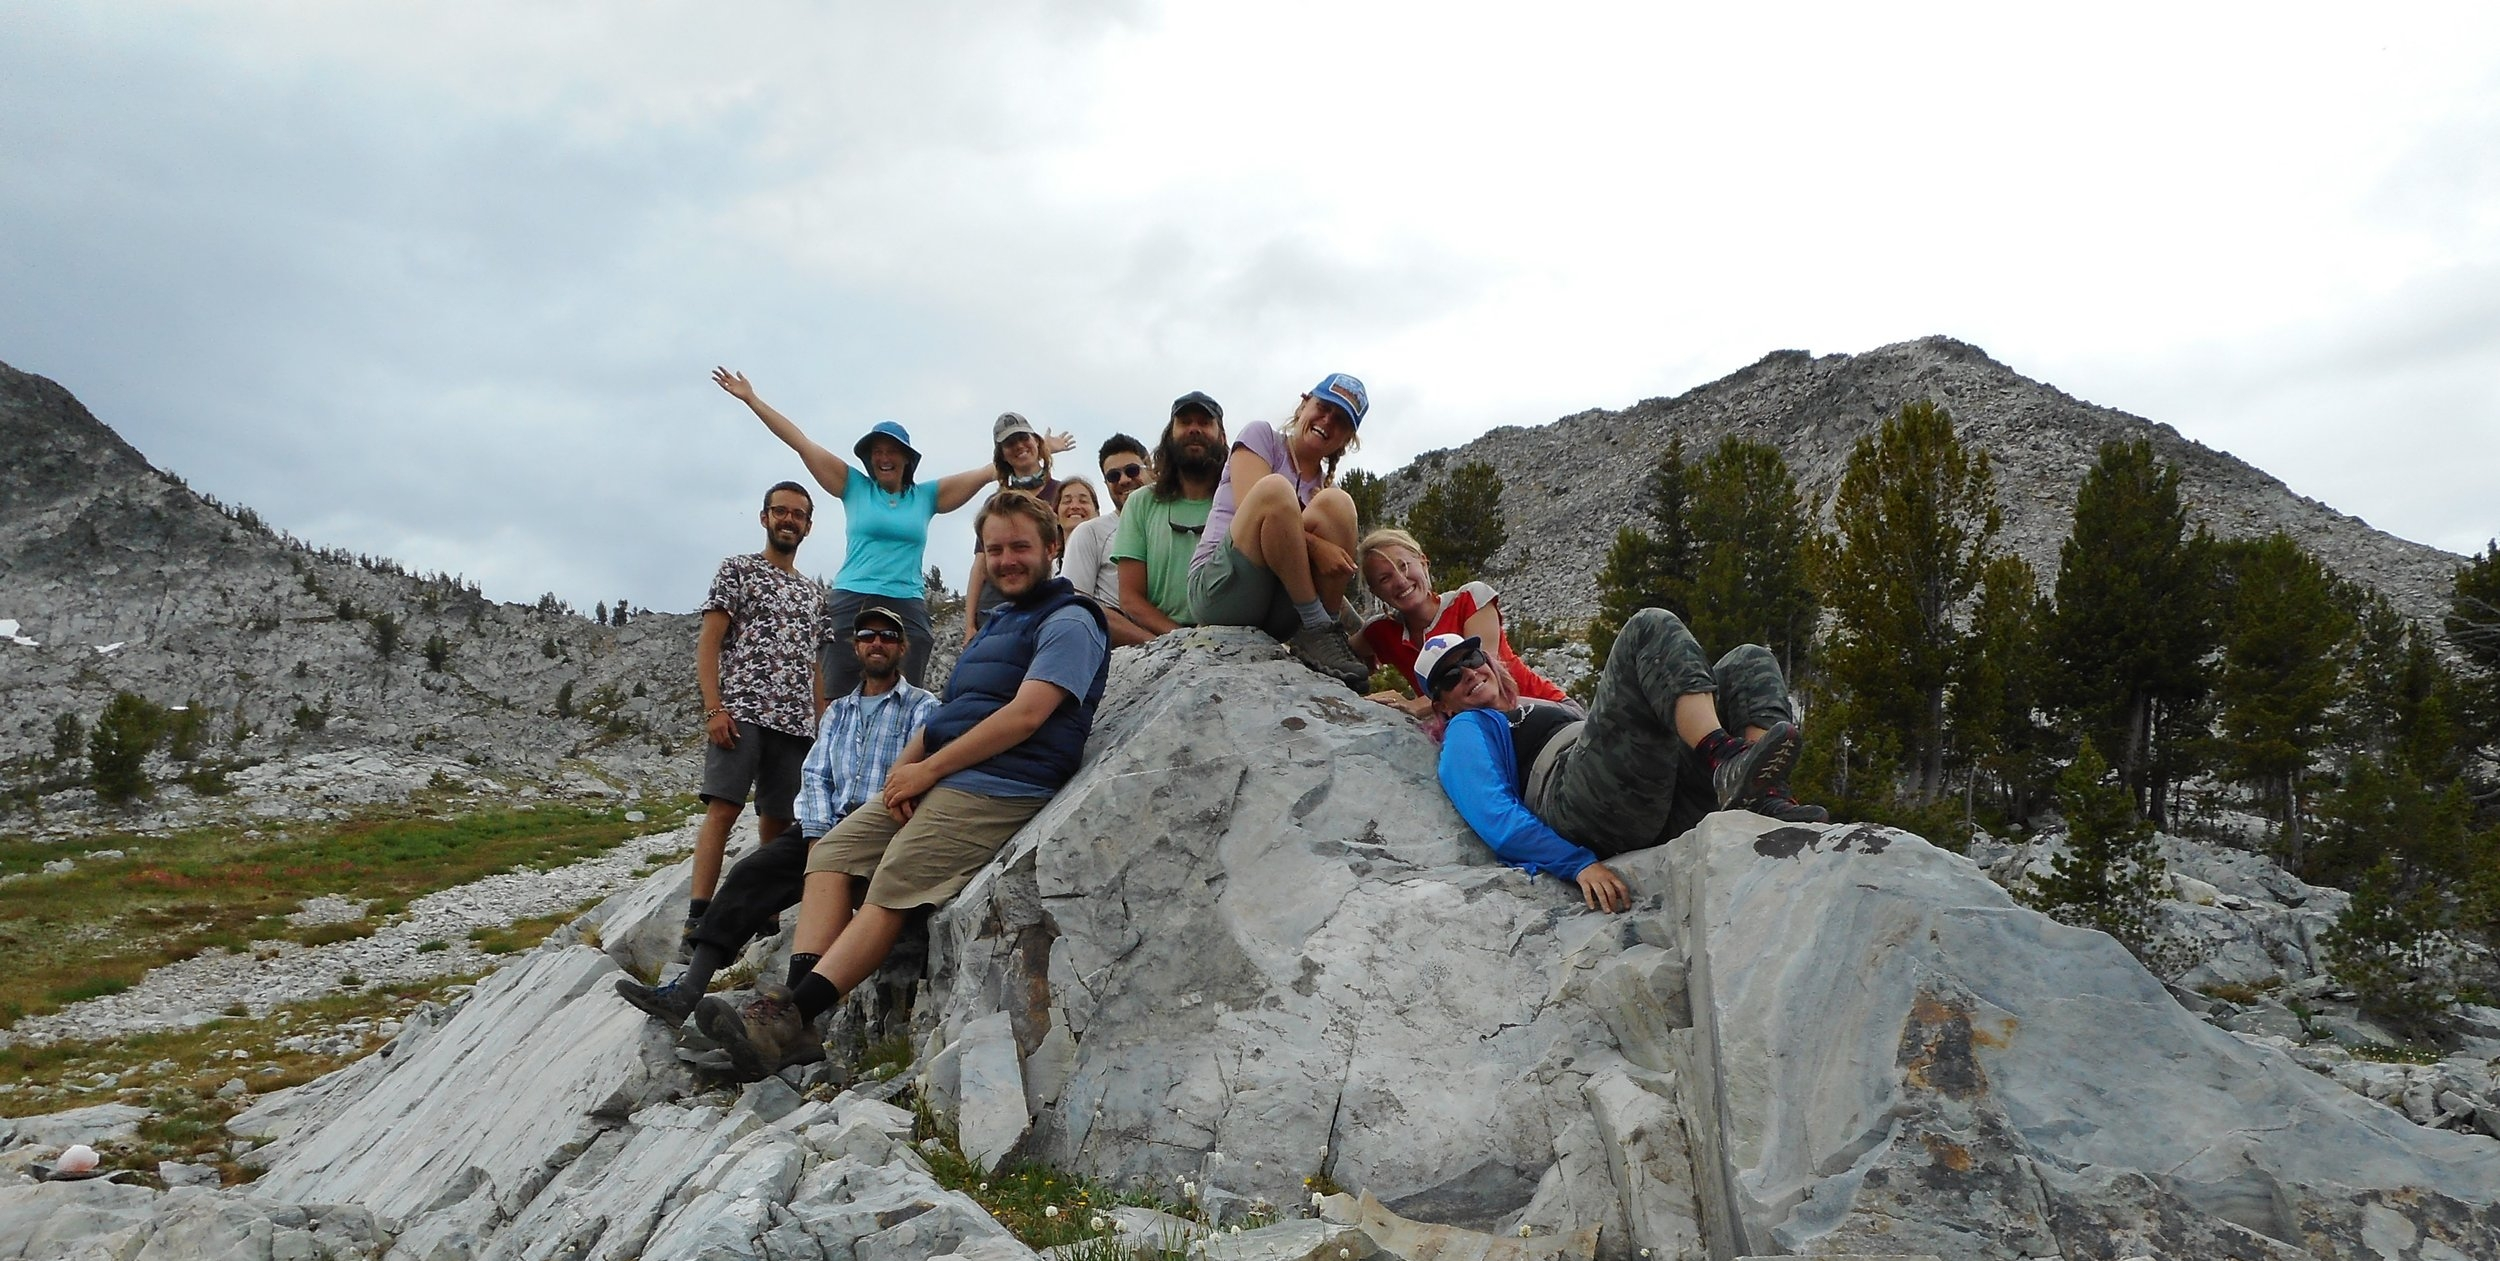 Relational Leadership Intensive Summer 2019 - Connect, remember, inspire, leadA three-week summer backpacking intensive on the Sacred Door Trail in southwestern, Montana.July 11 - July 31st, 2019